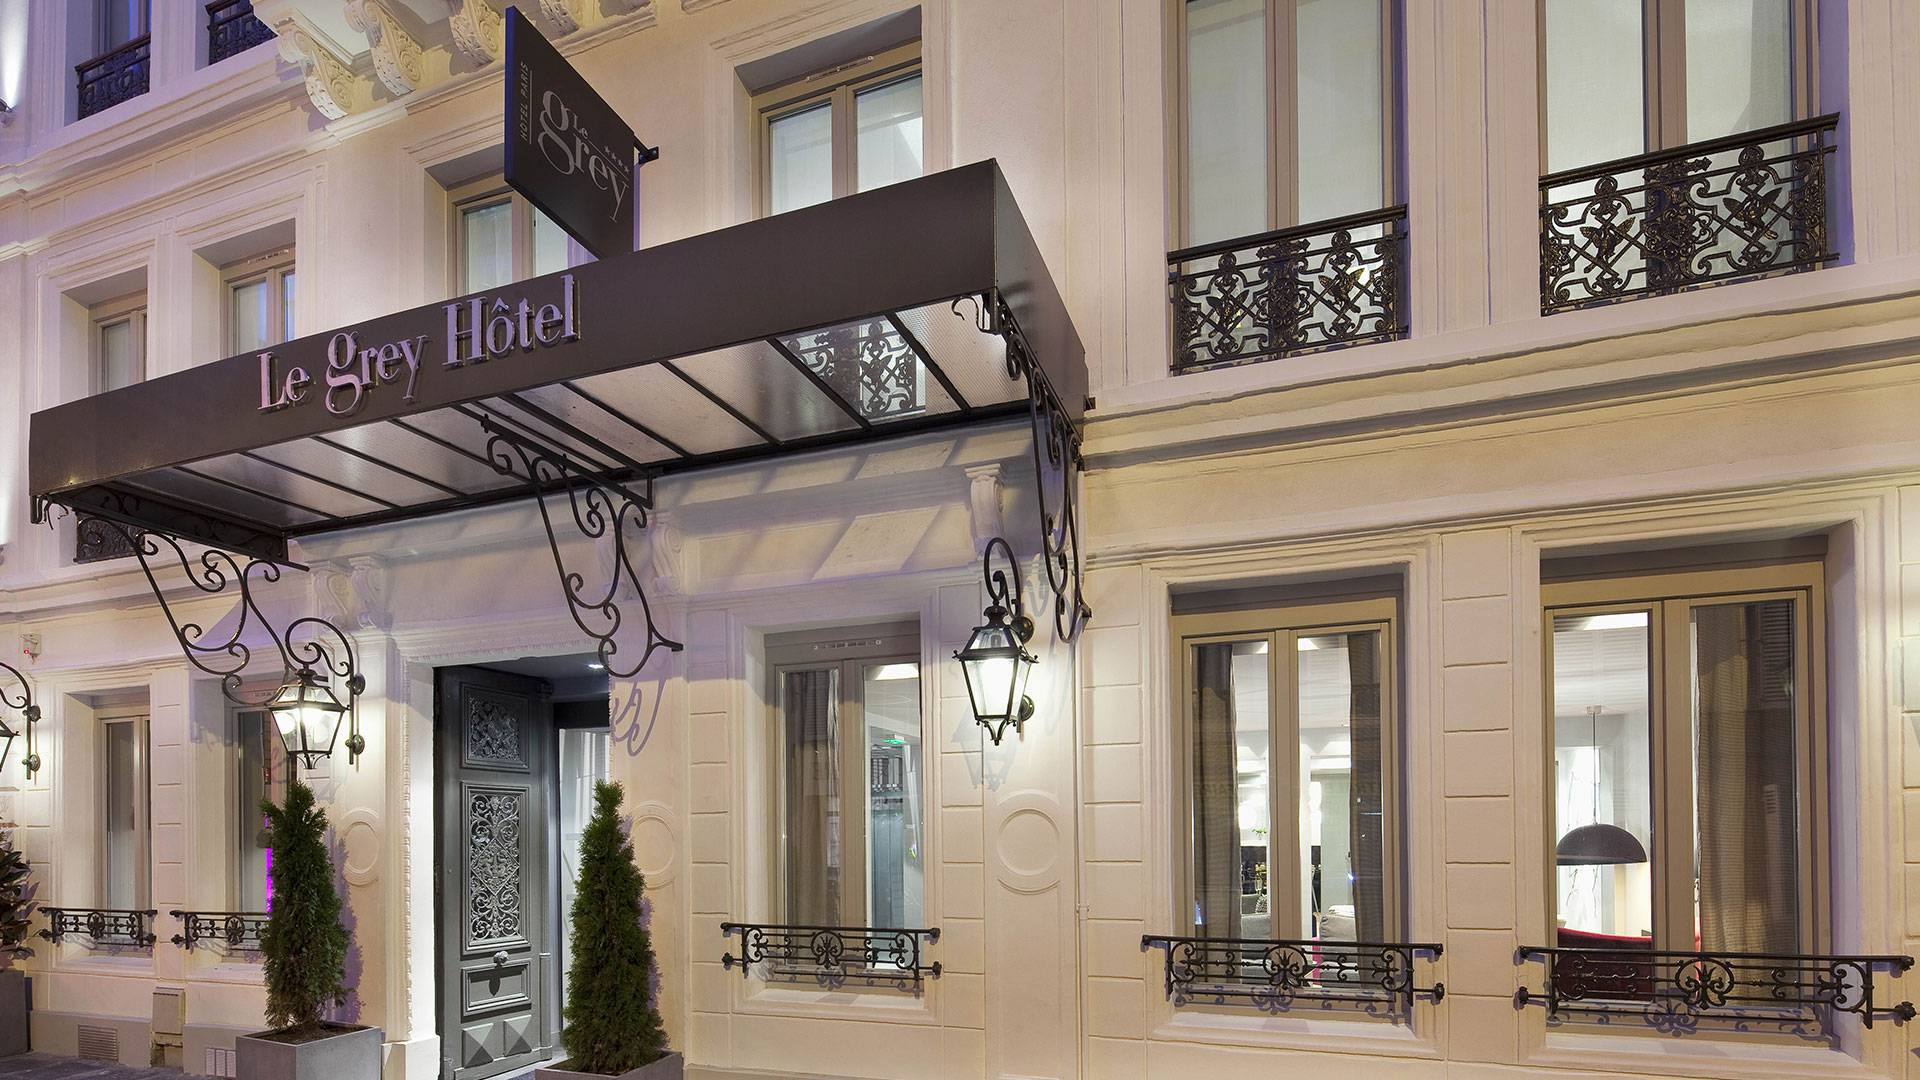 Boutique hotel paris 4 etoiles le grey hotel